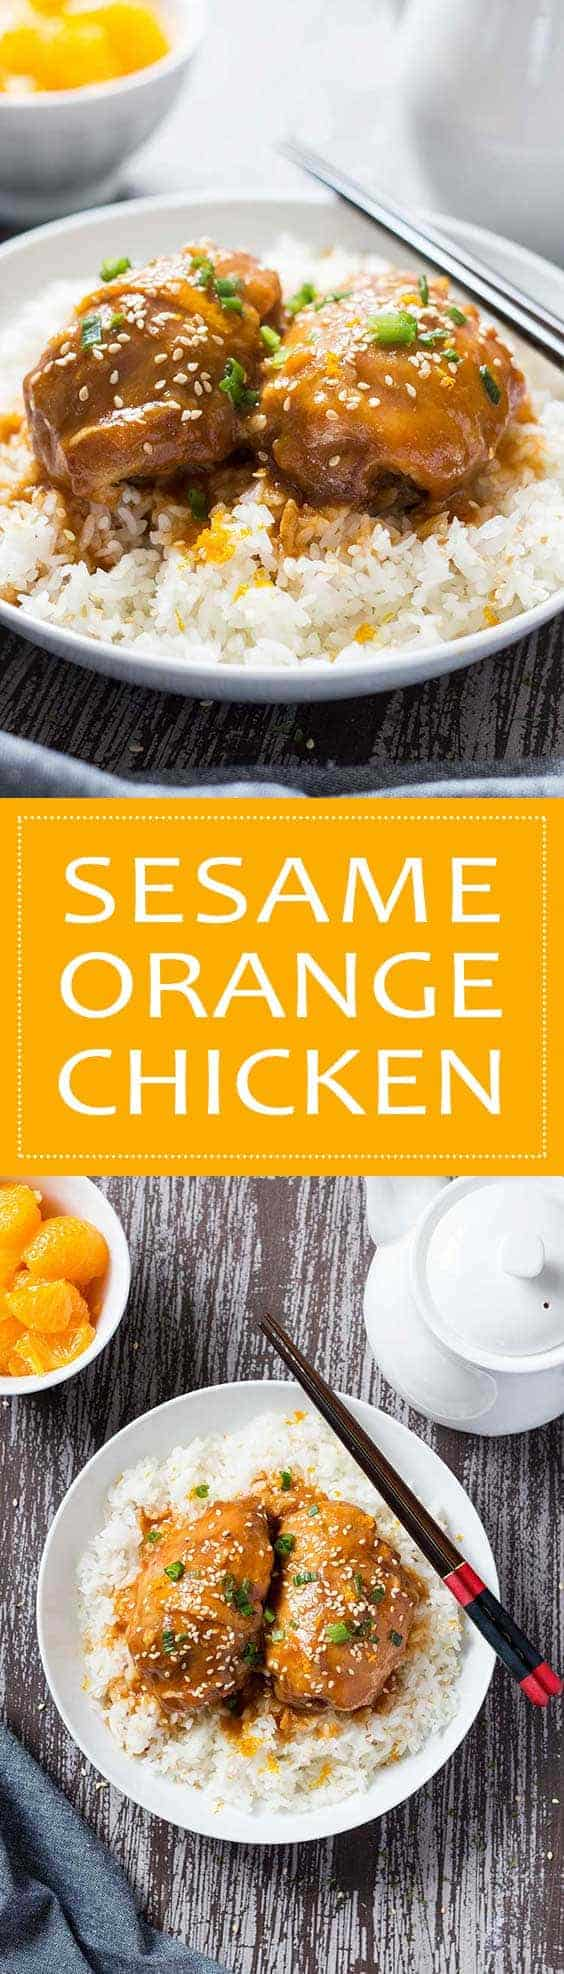 Sesame Orange Chicken | This easy slow cooker dish is a spin on a classic Chinese take-out dish, but without the take-out hassle or the take-out price!